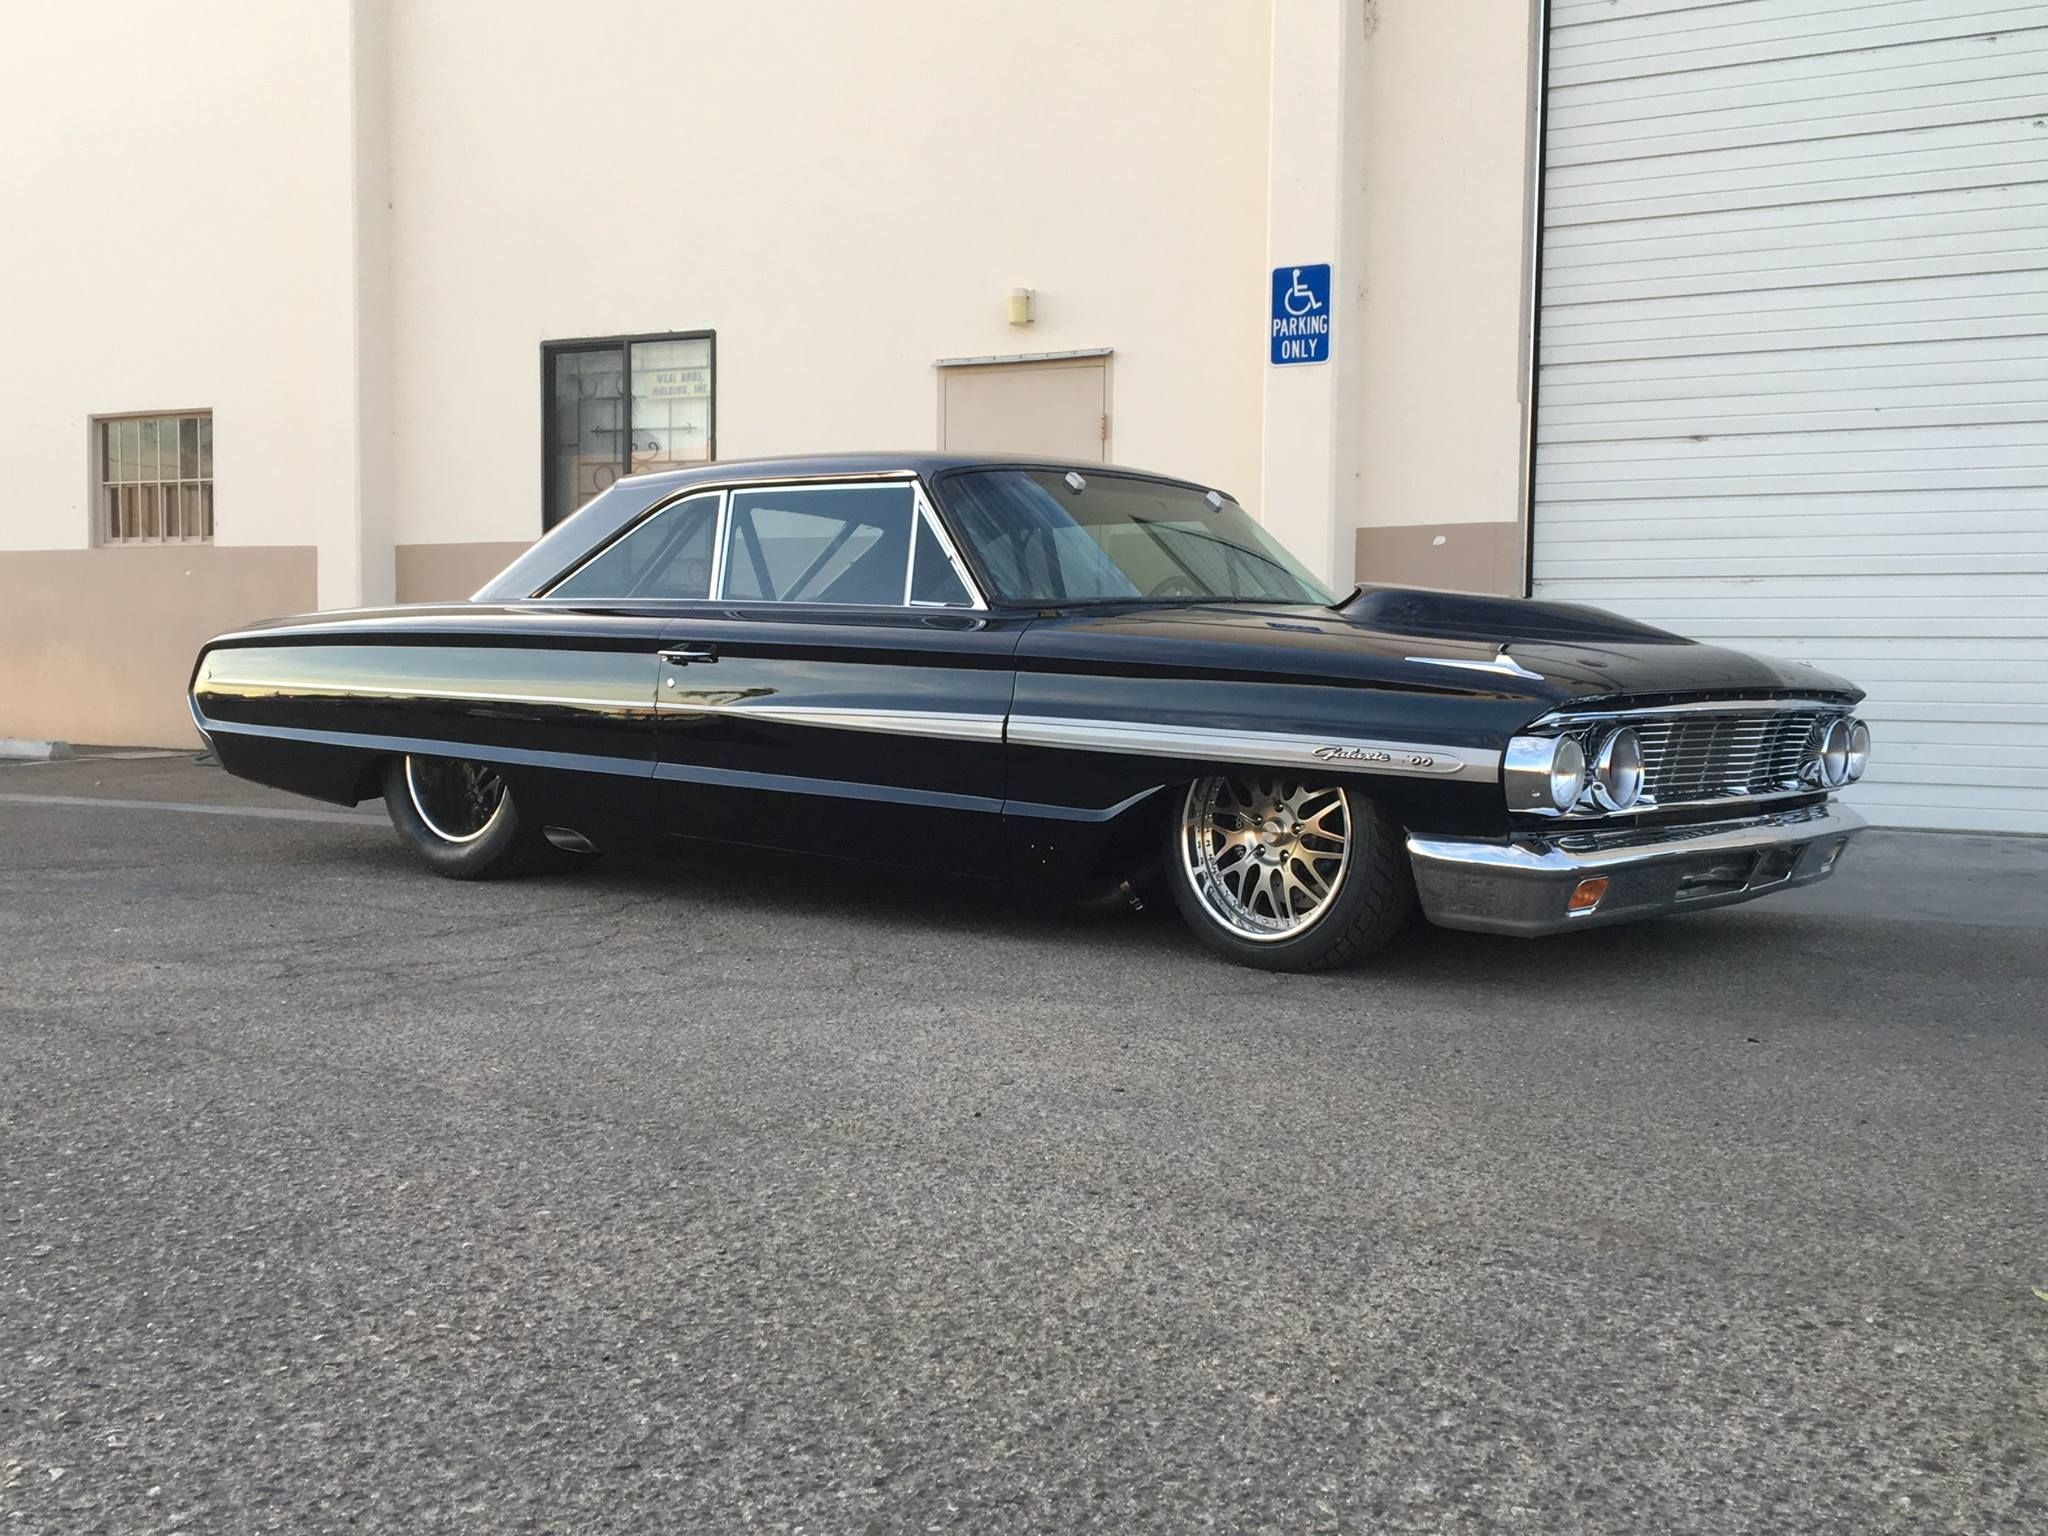 1964 Ford Galaxie With A Twin Turbo Cammer V8 Twin Turbo Galaxie Ford Galaxie